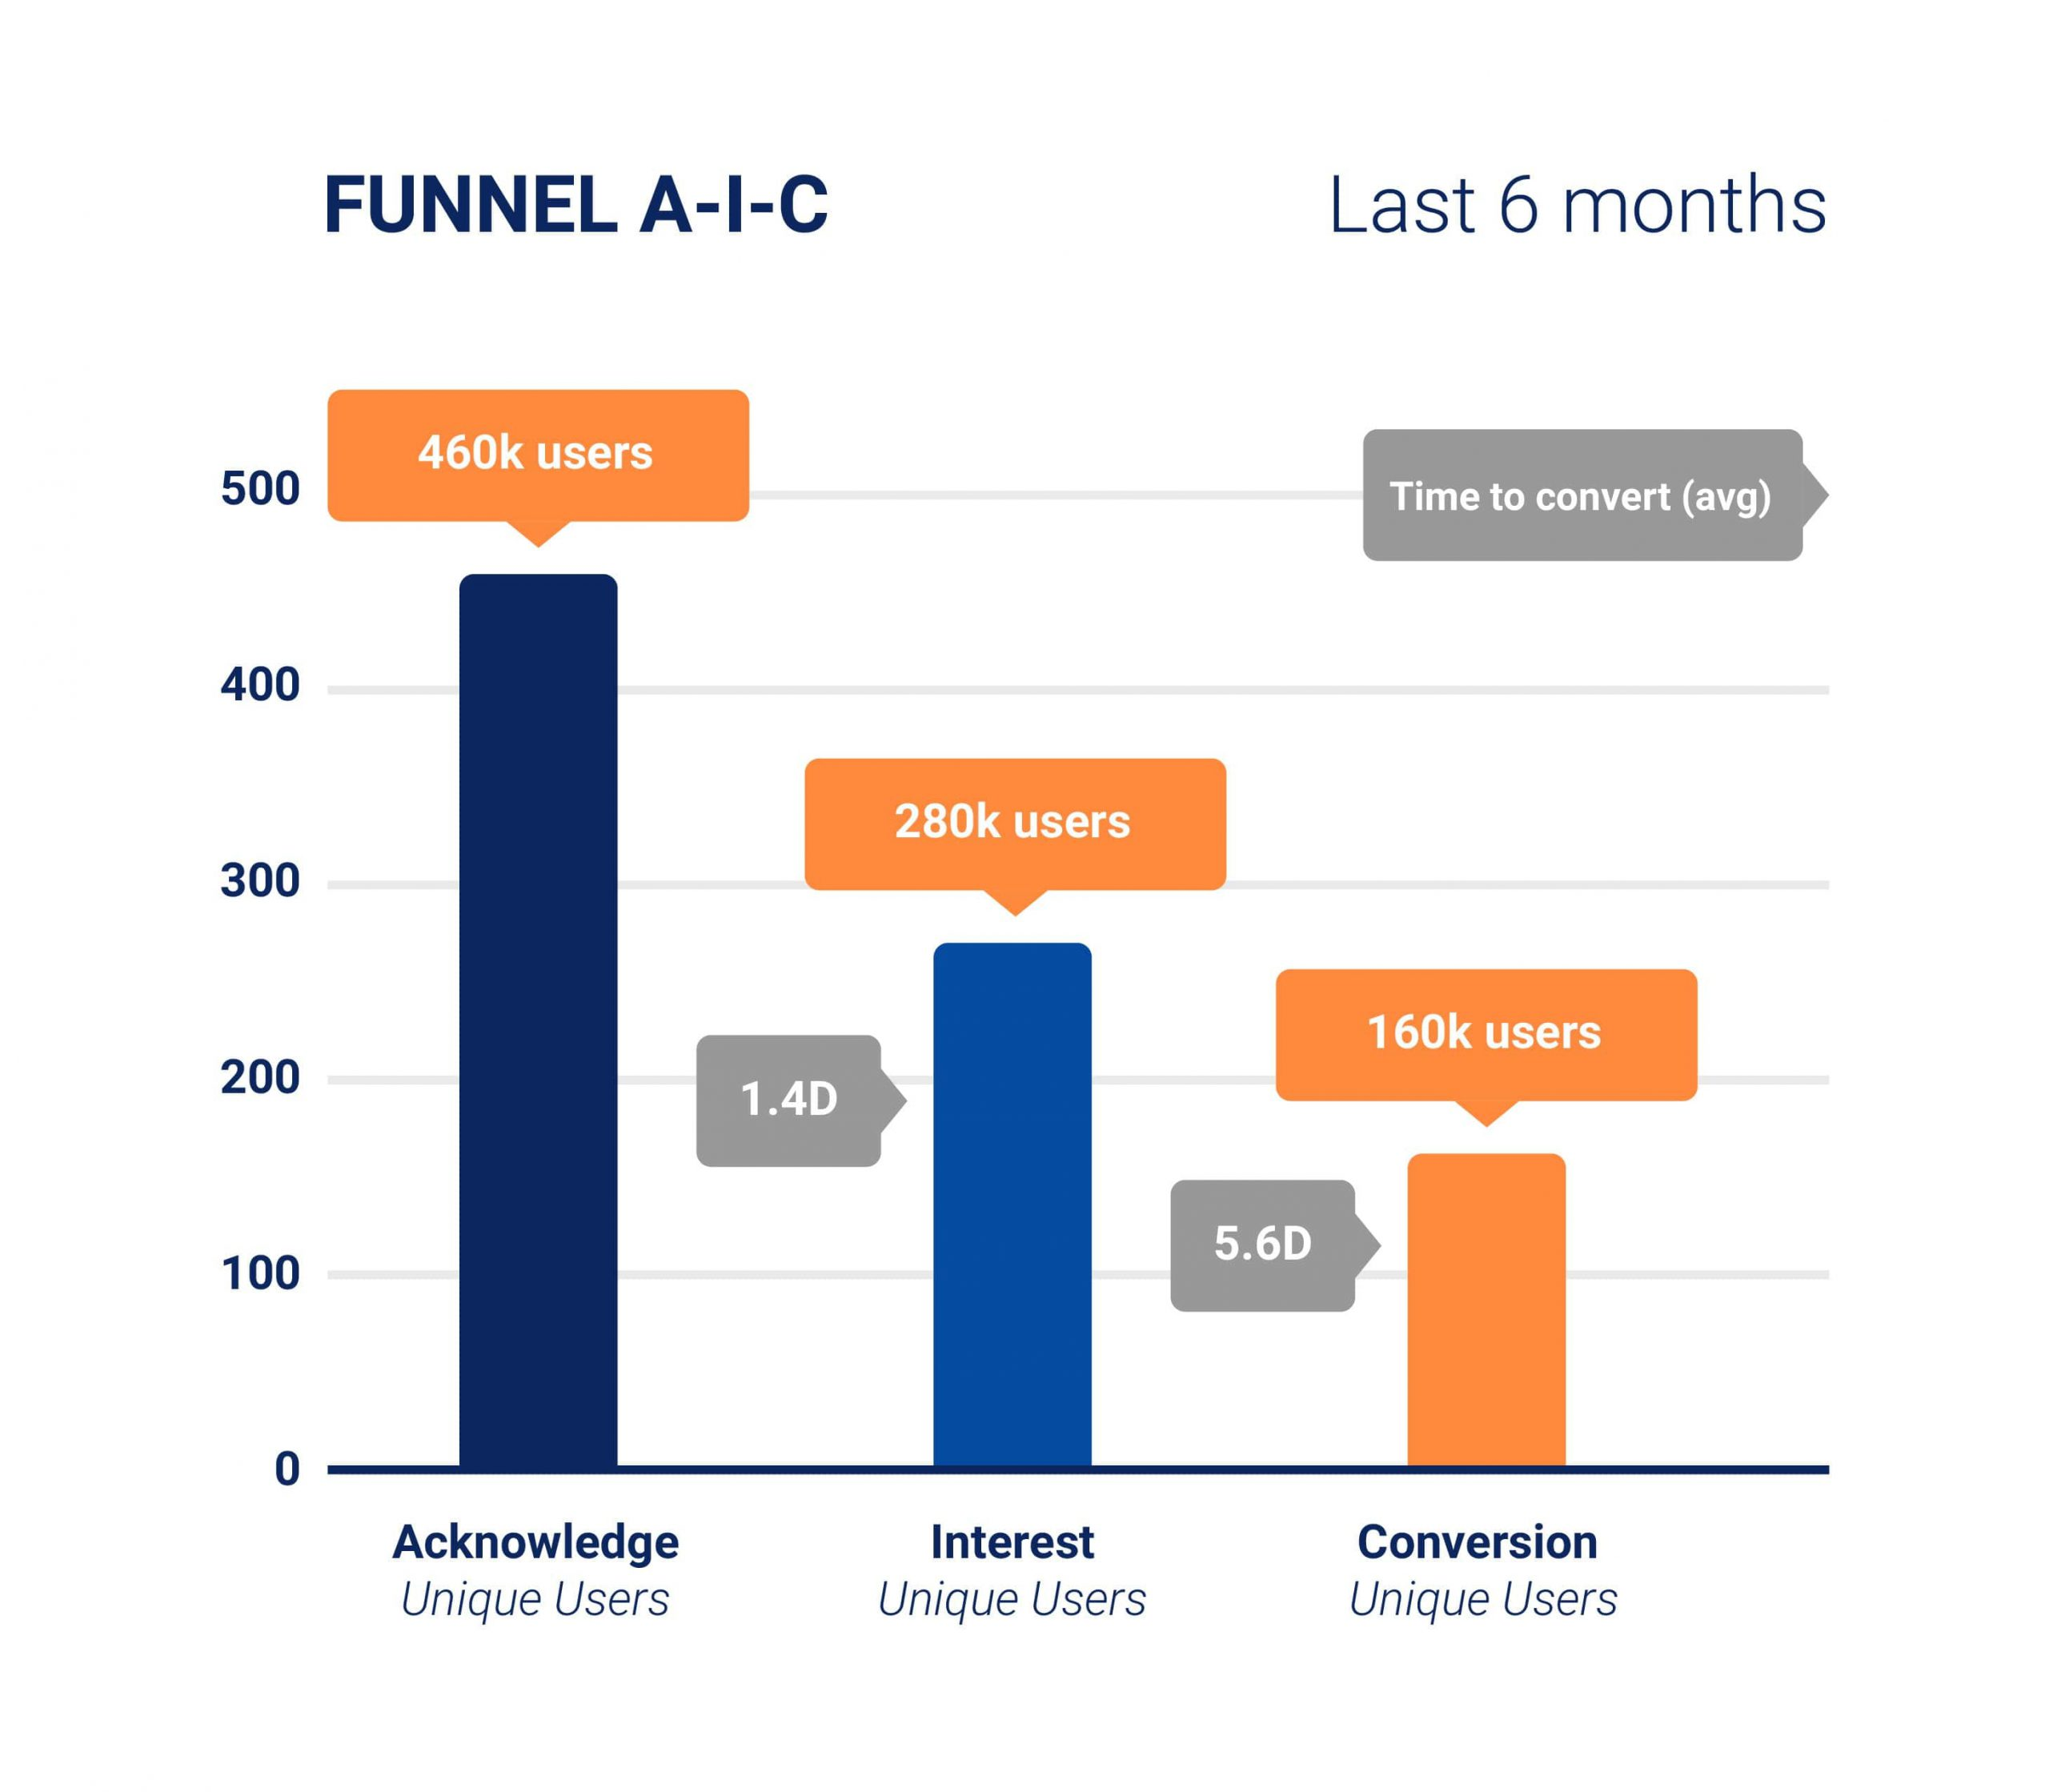 A-I-C Funnel - Last 6 months